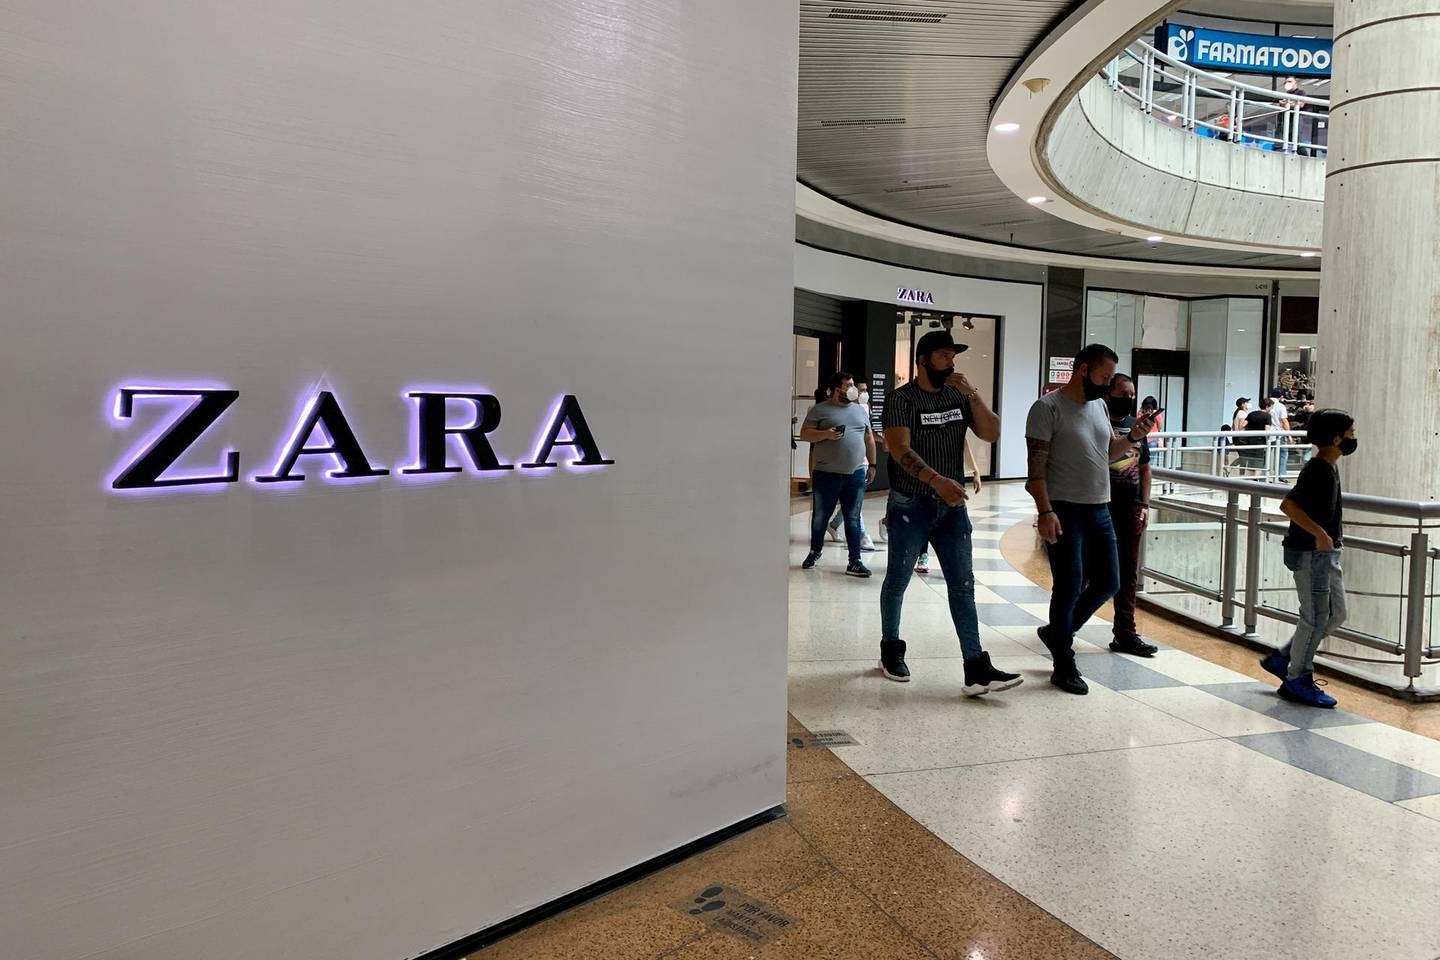 Shoppers walk past a Zara store at Sambil Shopping Center in Caracas, Venezuela, on Saturday, May 22, 2021. The franchise operator of Zara and two other popular apparel chains will close all of its stores in Venezuela in the next few weeks. Photographer: Manaure Quintero/Bloomberg